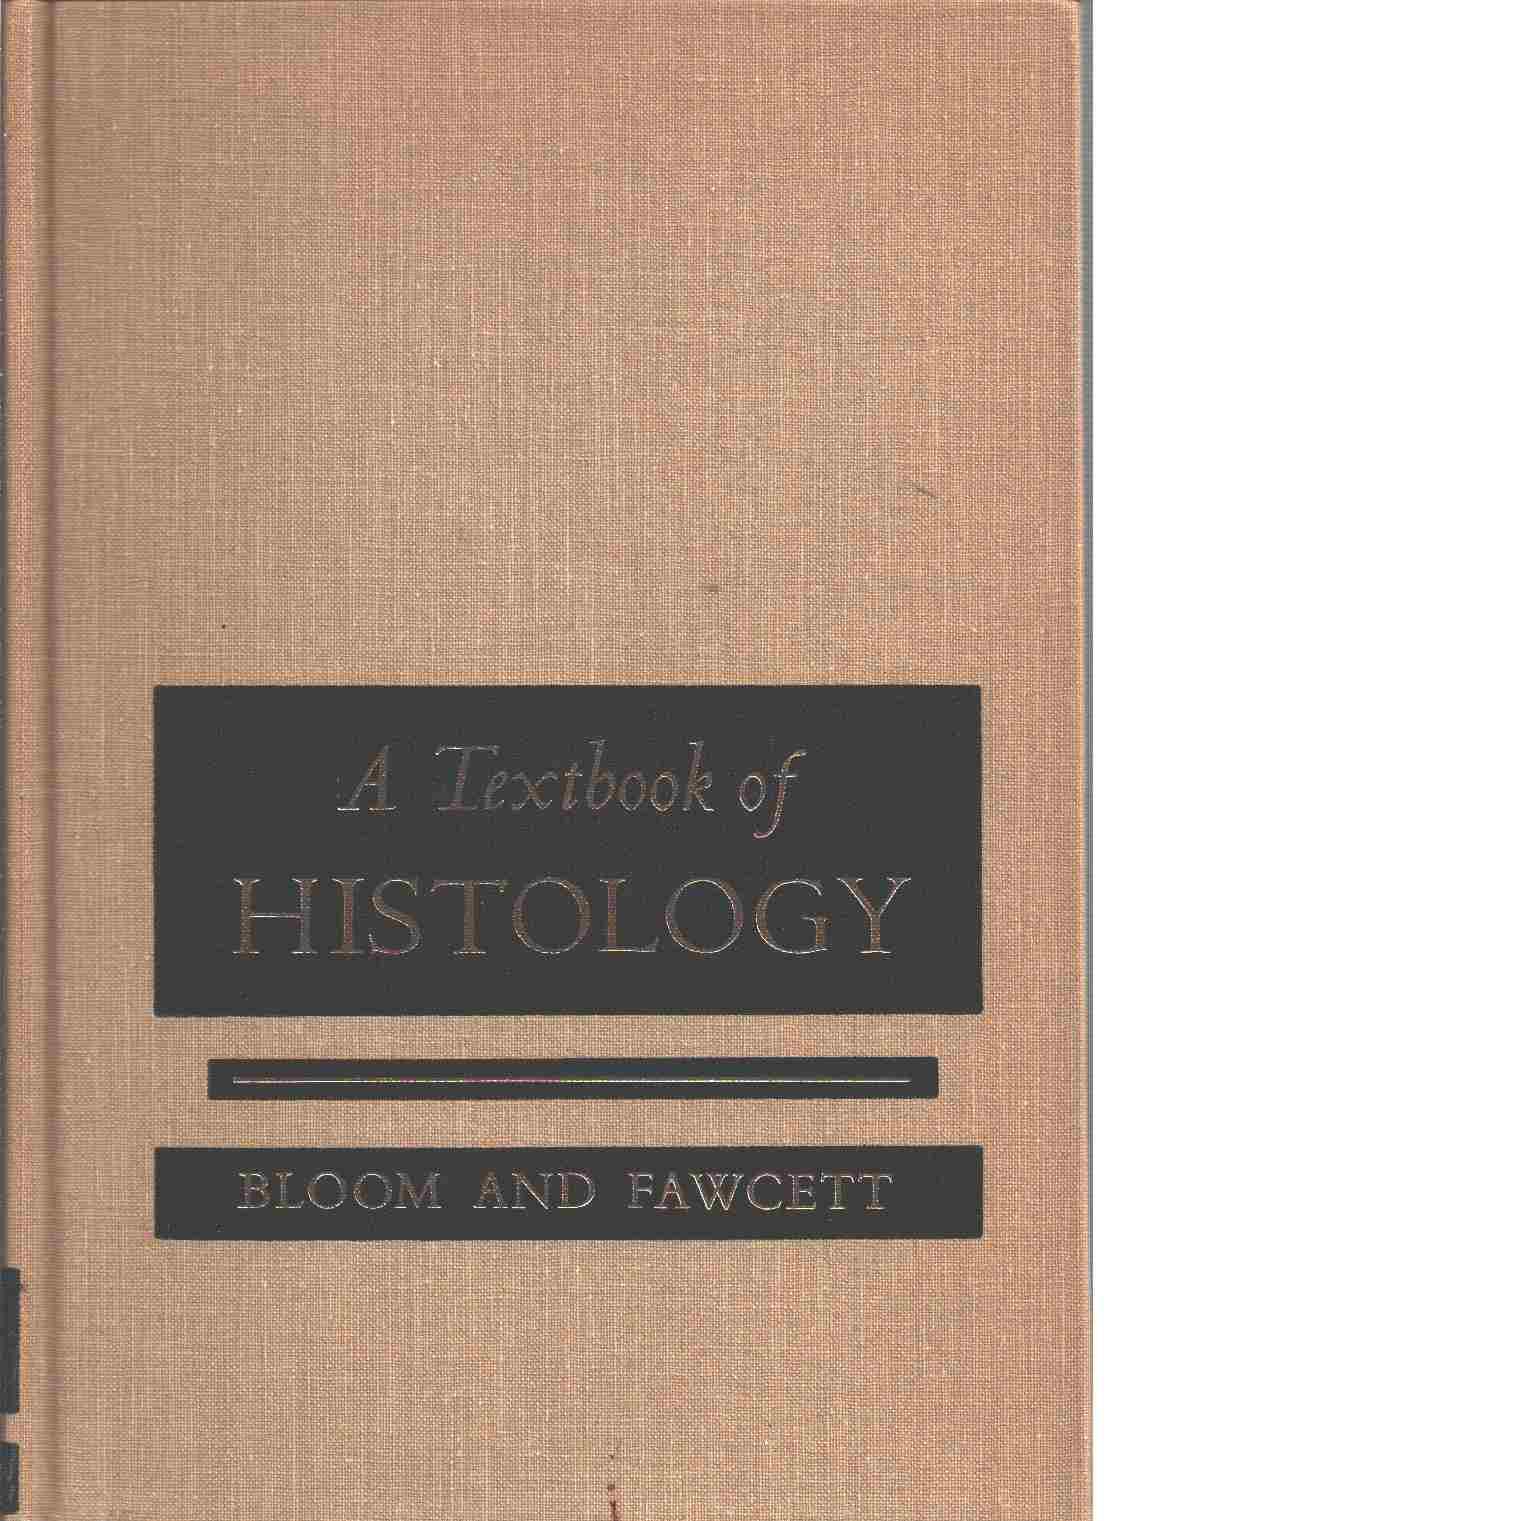 A textbook of histology - Bloom, William och Fawcett, Don W.